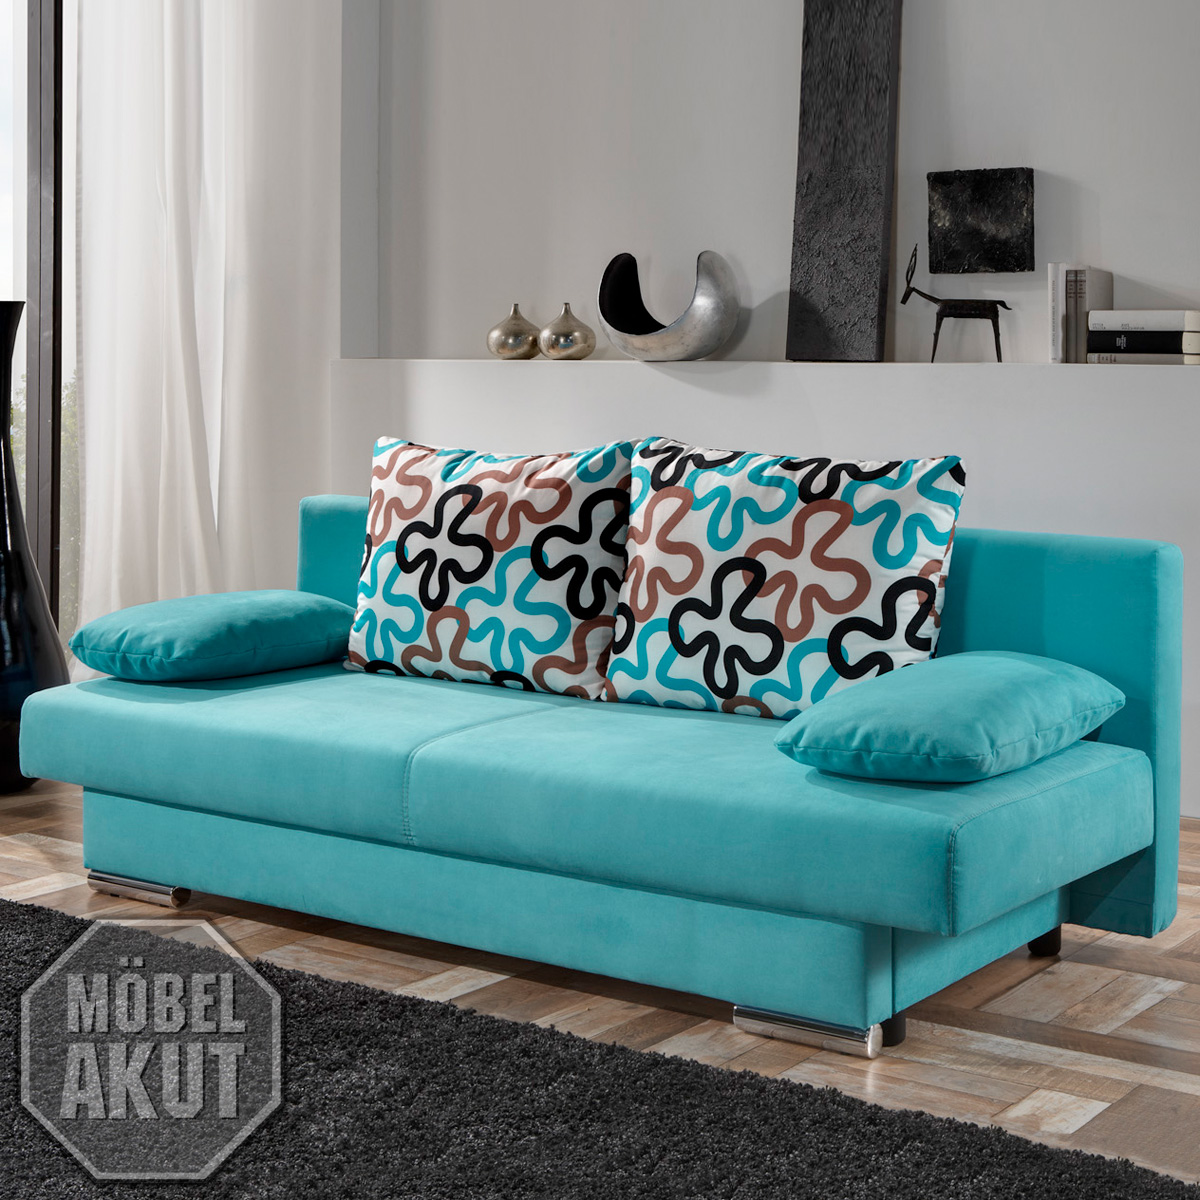 modernes schlafsofa tiffany sofa in t rkis petrol neu. Black Bedroom Furniture Sets. Home Design Ideas